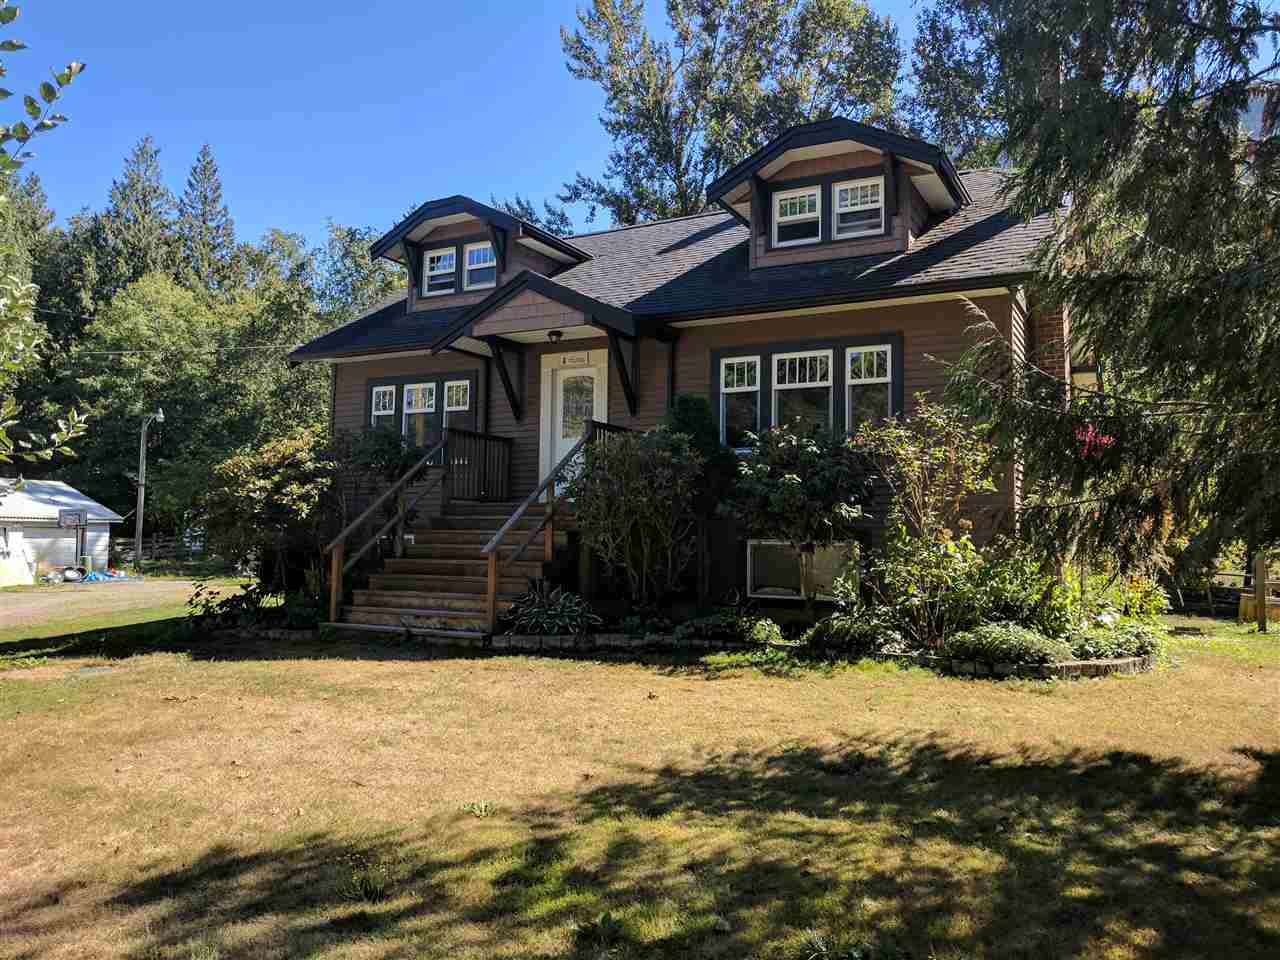 An opportunity to own a heritage style character home on Majuba Hill. This home has retained it's unique heritage character with unique architecture and original hardwood flooring while offering a number of upgrades including a gorgeous country kitchen with granite counters, newer windows, furnace, roof and vinyl siding and septic system. Set on a private 3 acre lot with a horse barn, paddock & riding ring with a creek meandering through. Very desirable Majuba Hill location with the potential for a carriage home. Call to view now.